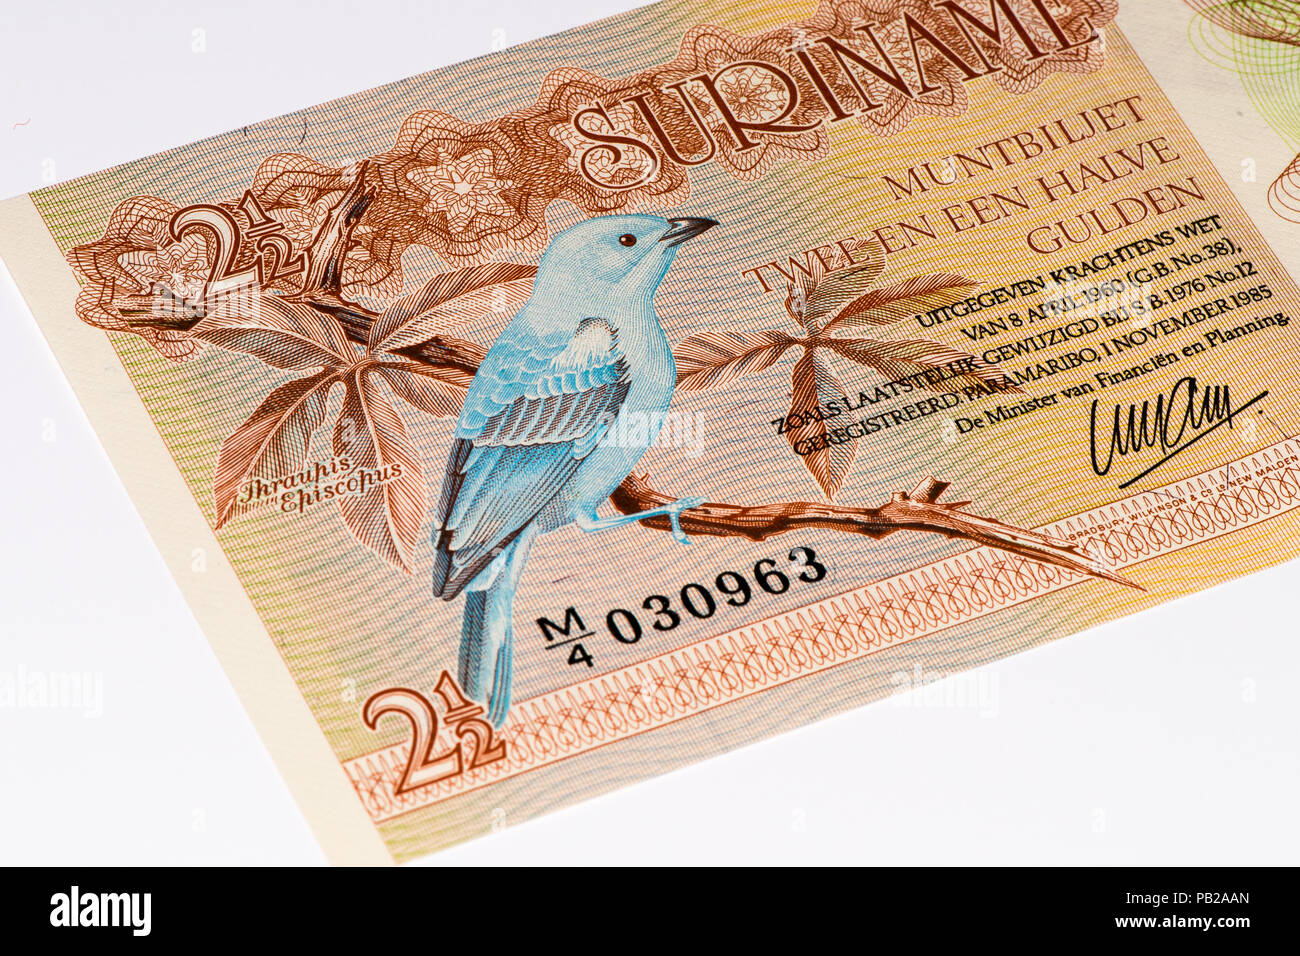 2.5 Surinamese gulden bank note. Gulden is the former currency of Suriname - Stock Image